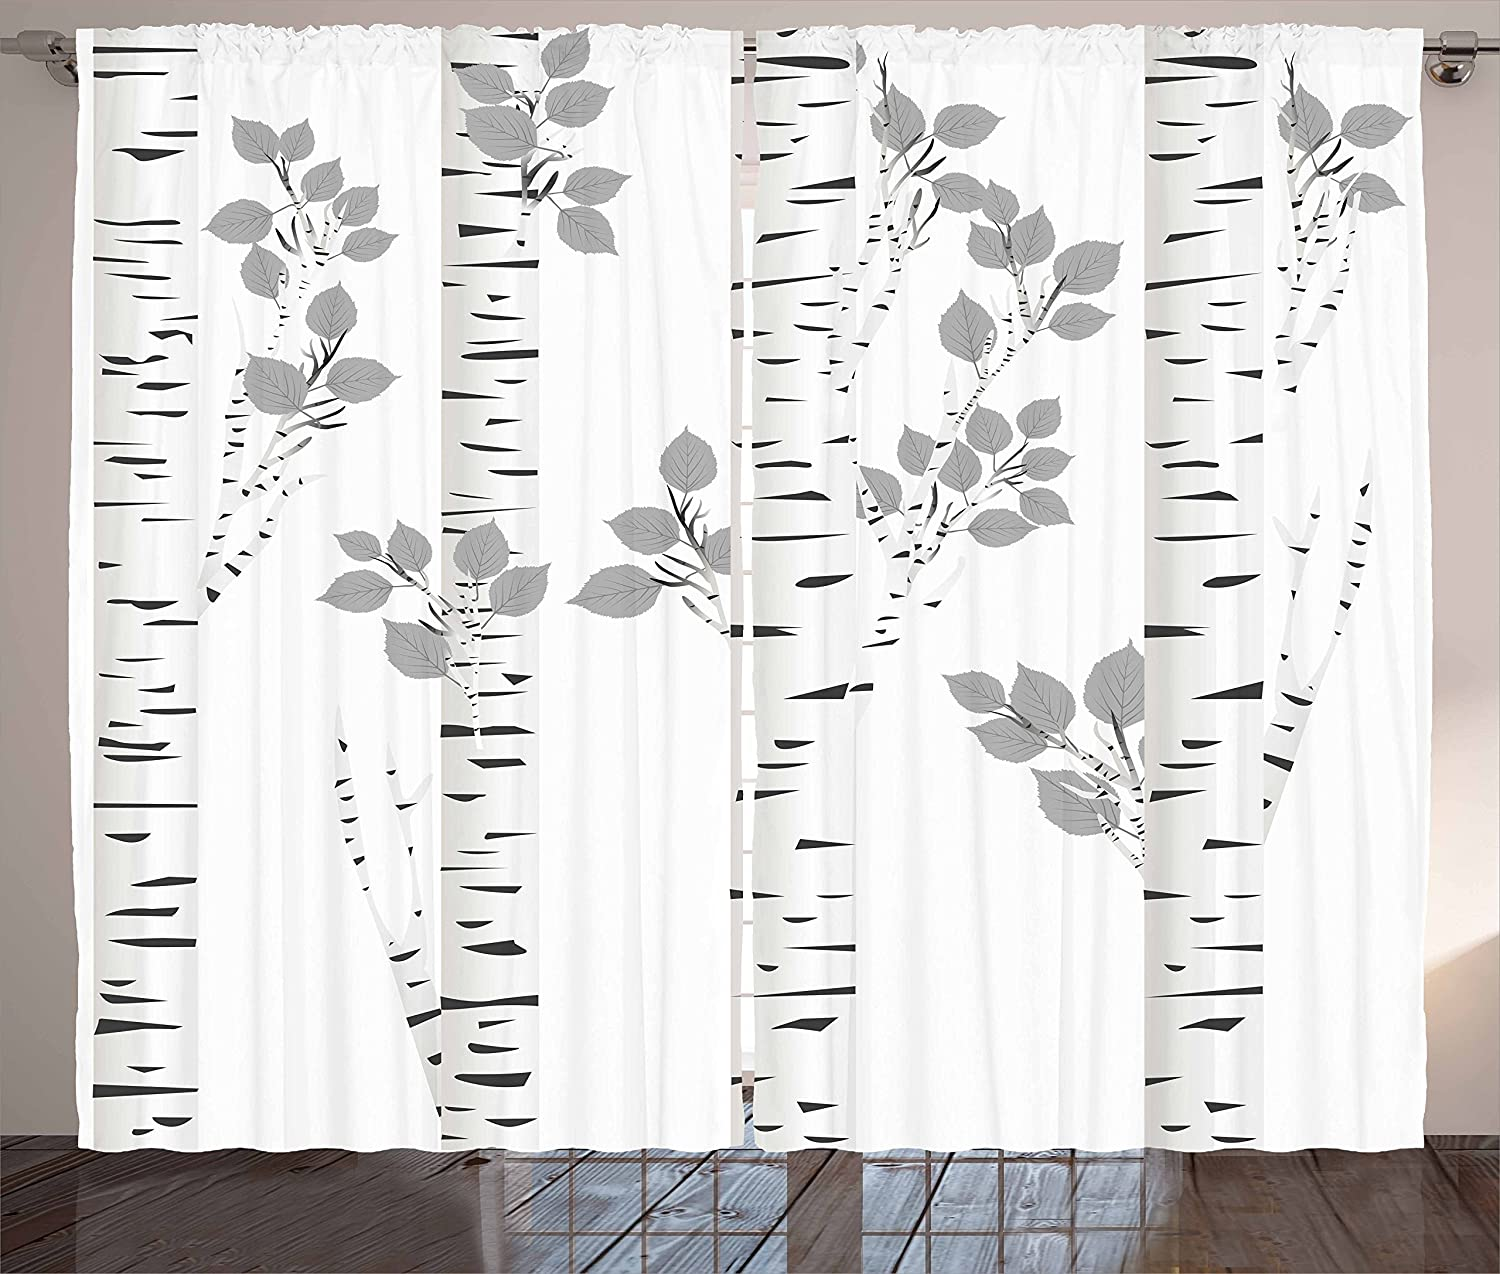 Ambesonne Birch Tree Curtains, White Branches with Leaves Autumn Nature Forest Inspired Image Print, Living Room Bedroom Window Drapes 2 Panel Set, 108